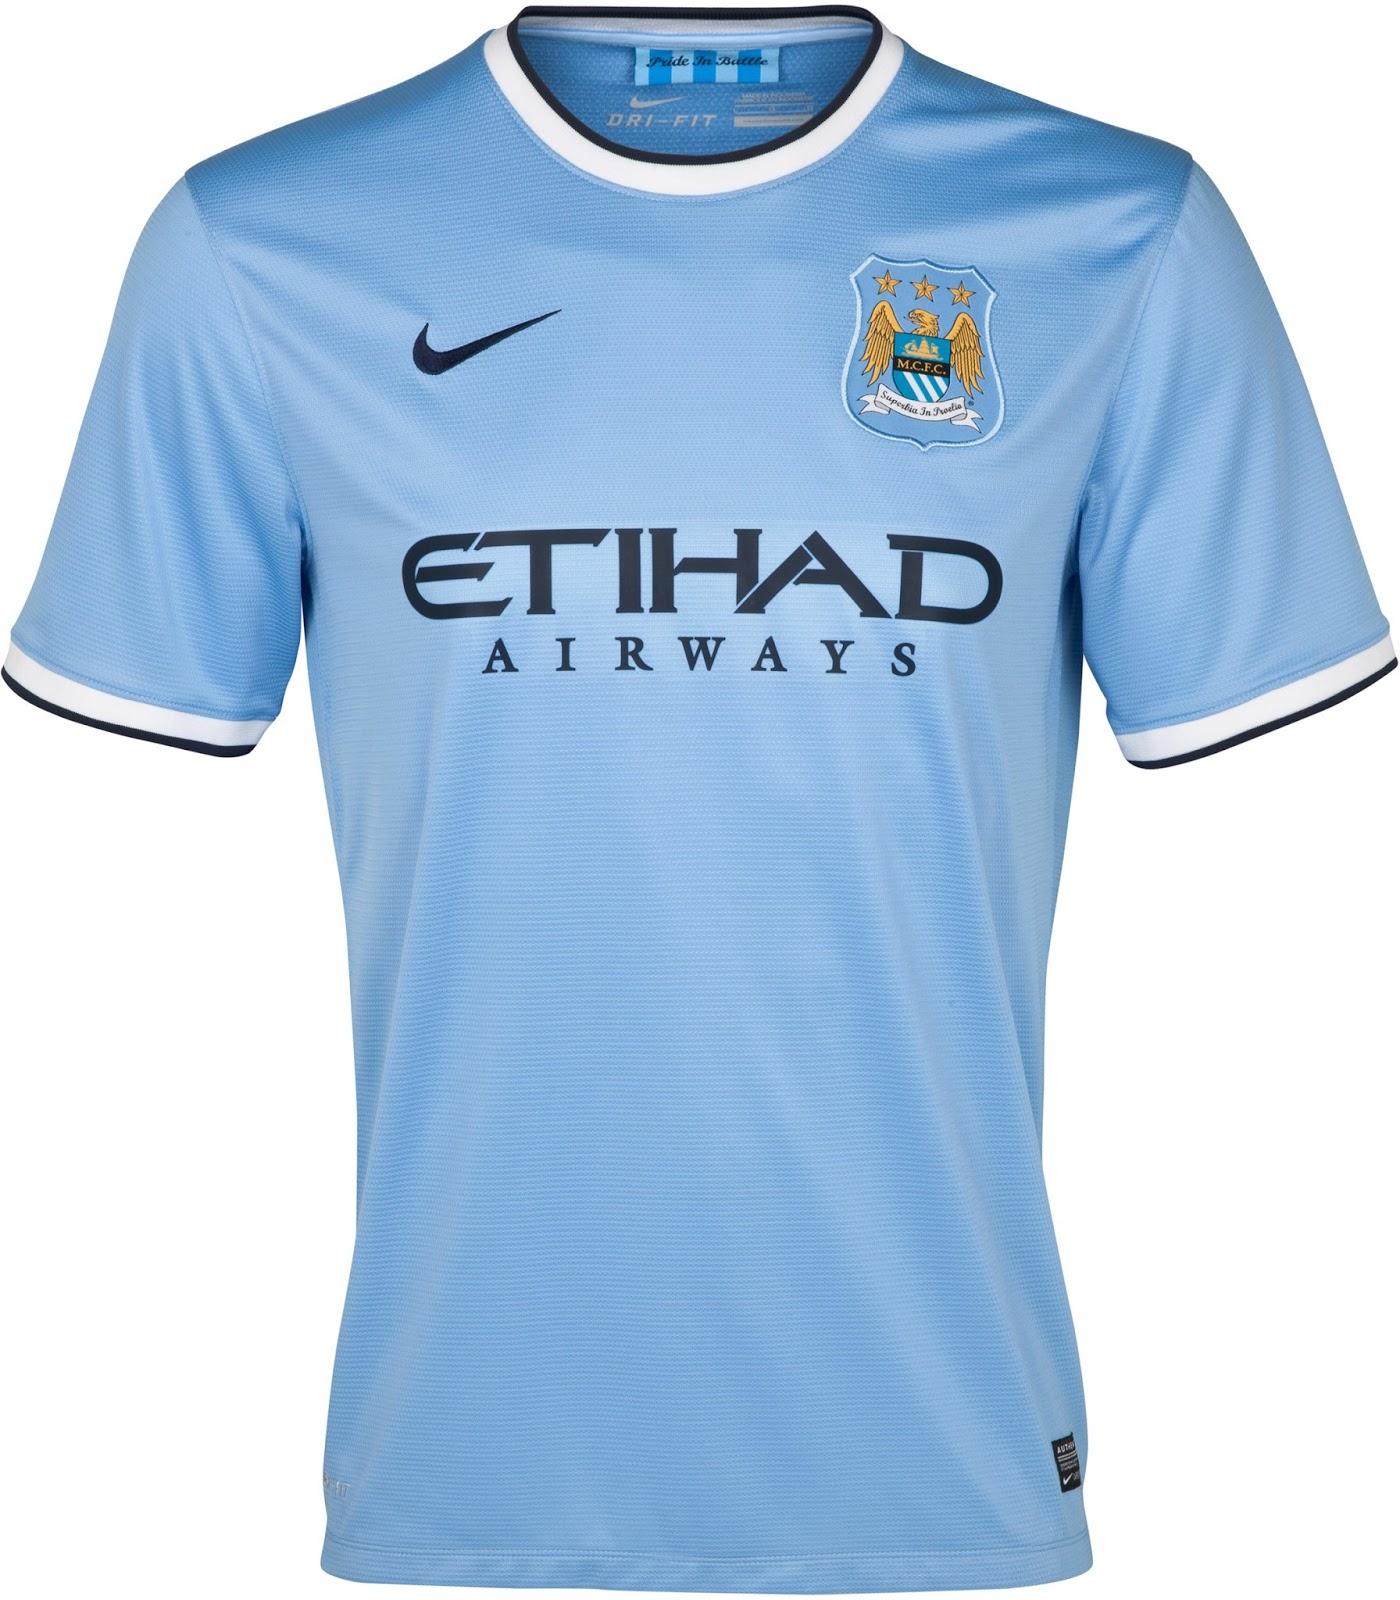 68371bc32 Nike Manchester City. camisa nike manchester city jogador nike. what ...